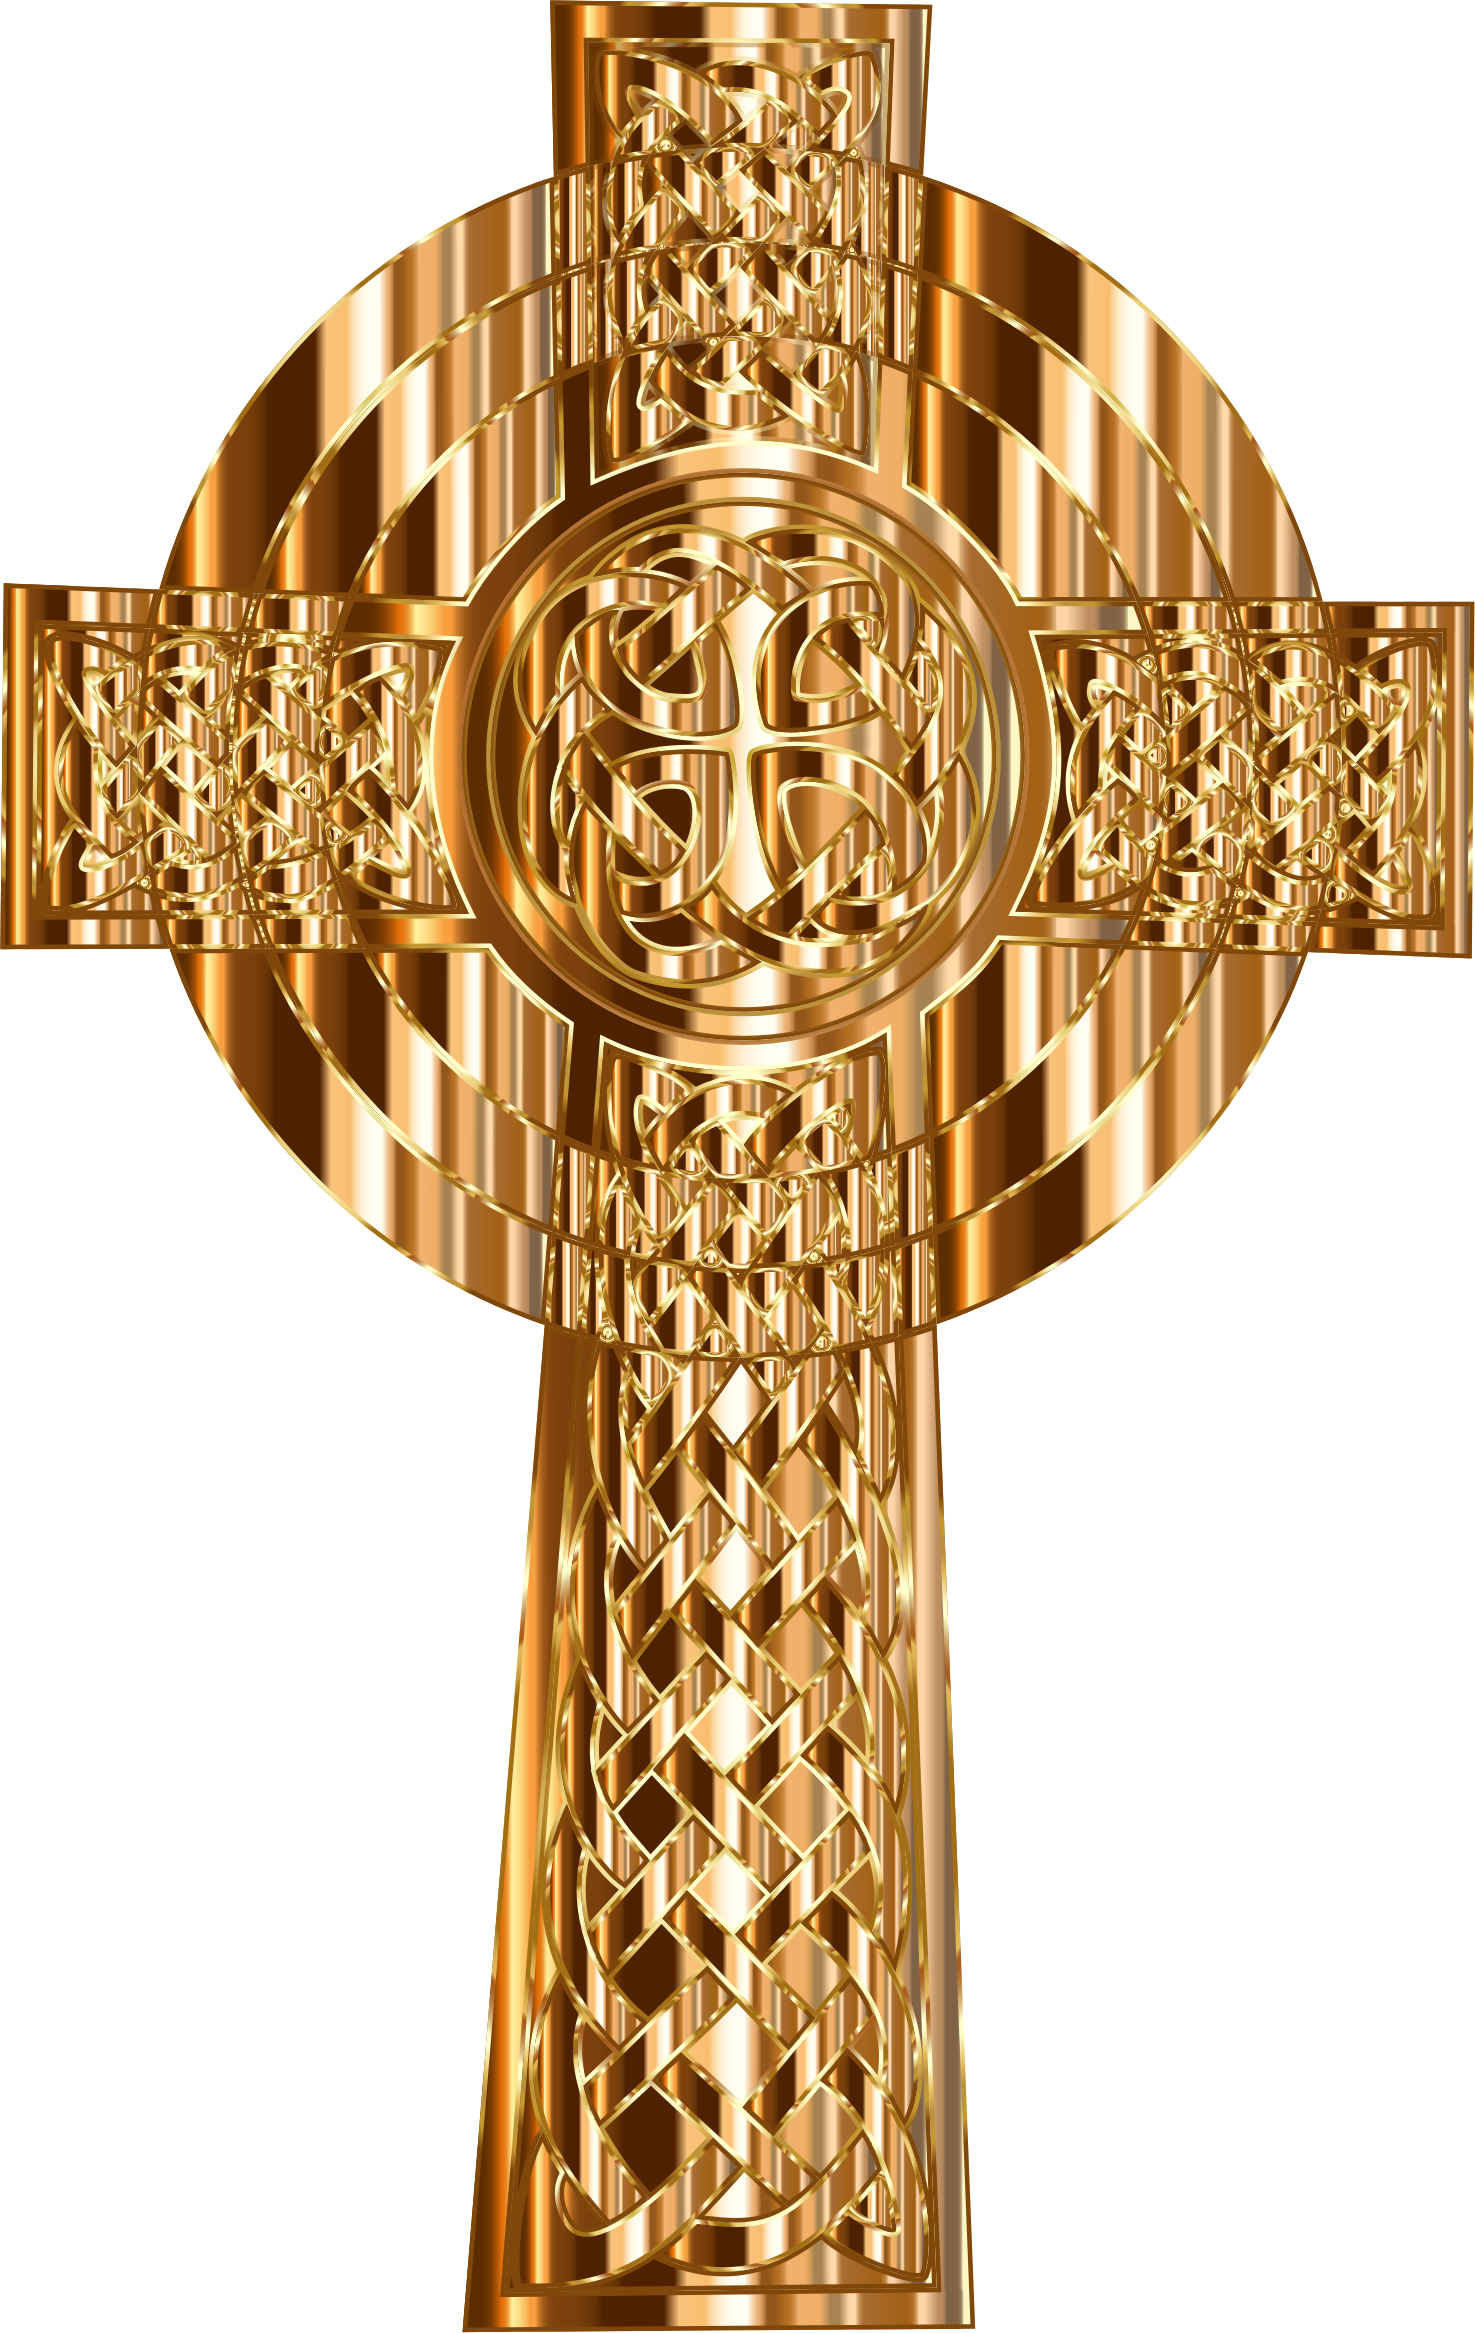 Celtic cross gold clipart jpg free download Clipart - Golden Celtic Cross jpg free download